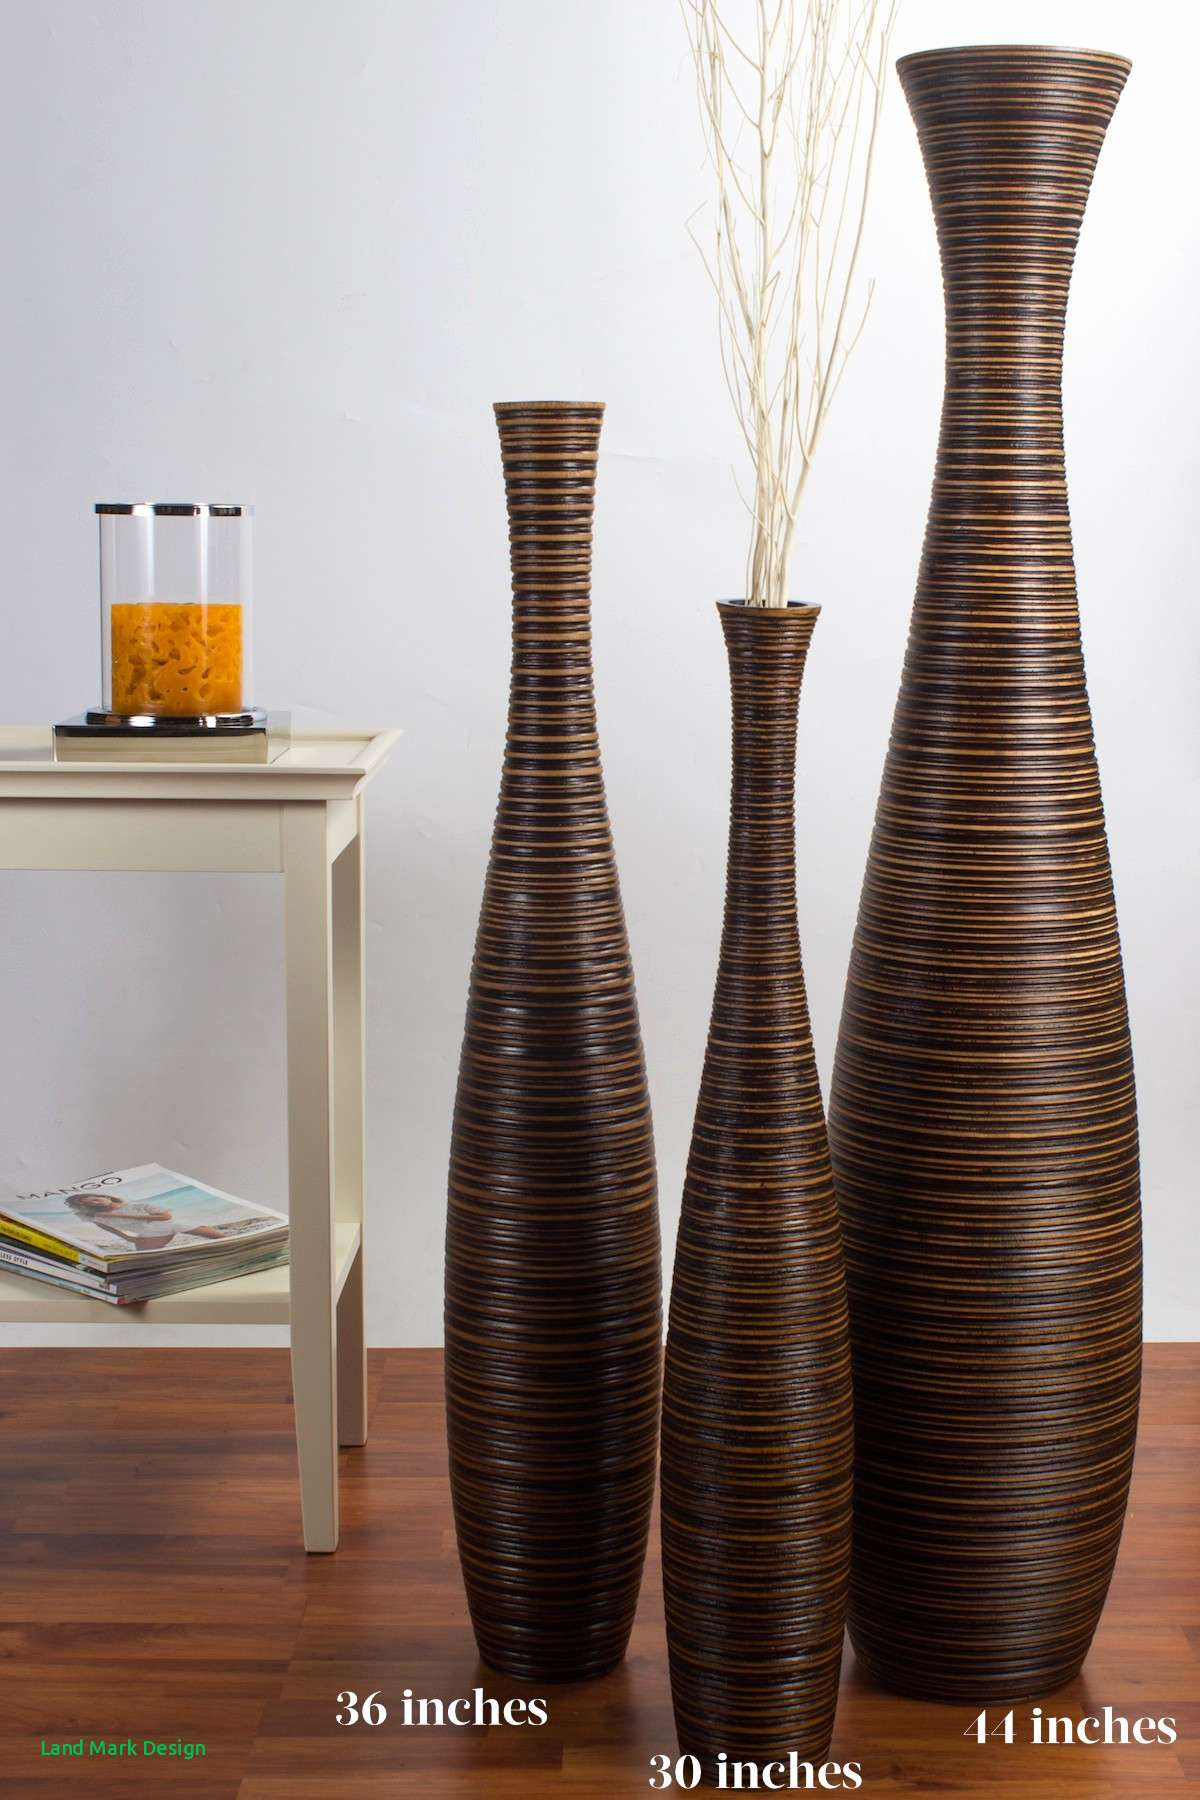 Tall Mango Wood Vase Of Tall Wicker Vase Design Home Design within Wicker Vase Unique Brown Tall Floor 30 Inches Wood Leewadee Of Vaseh Vases Img 5252 Label